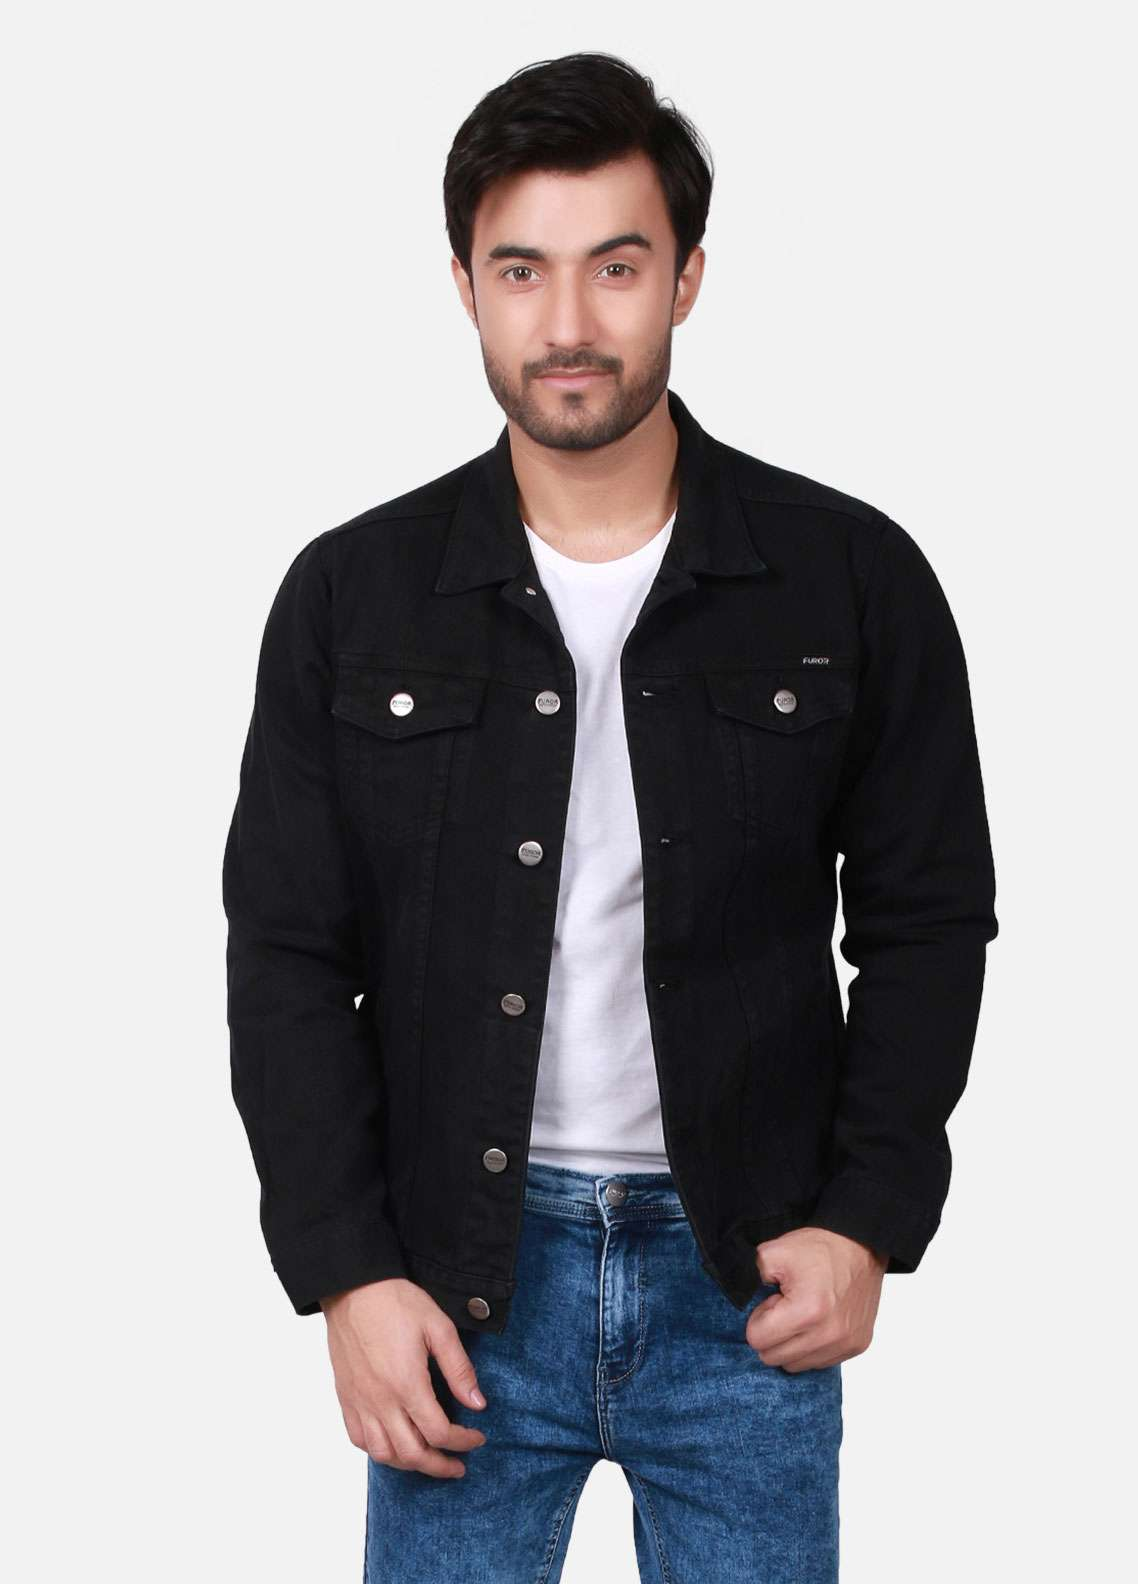 Furor Denim Casual Men Jackets - Black FMTJD18-001